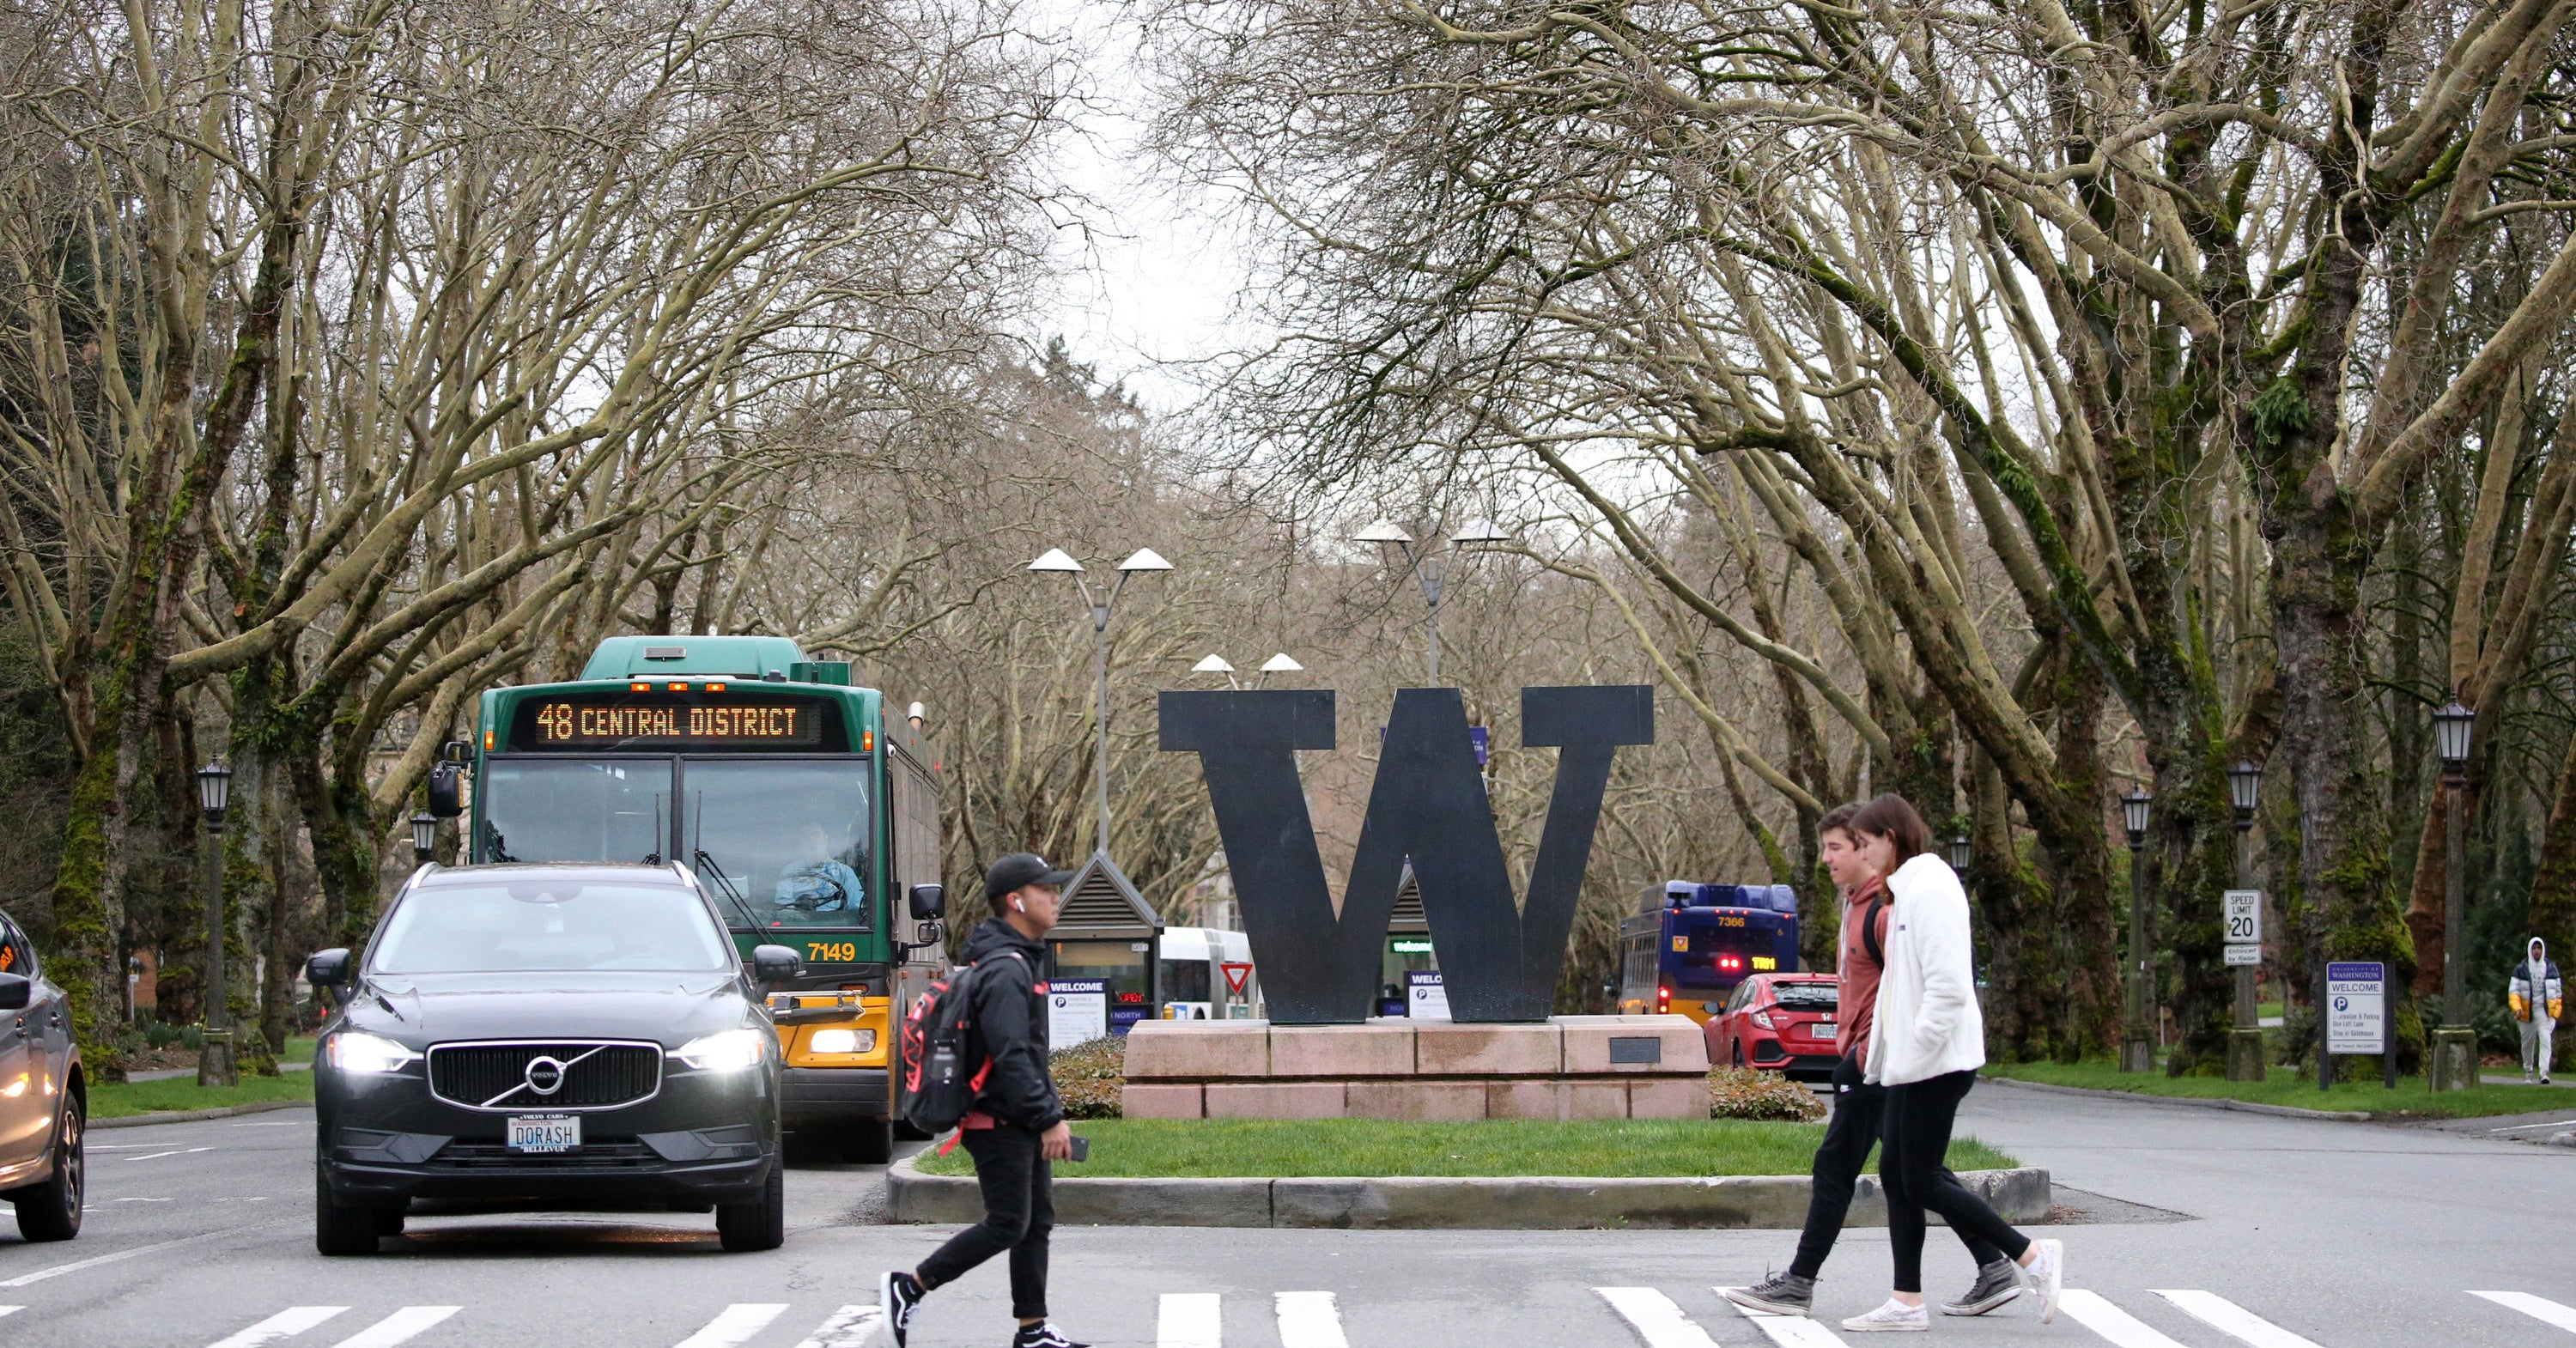 More Than 100 Fraternity Members At The University Of Washington Have Tested Positive For COVID-19